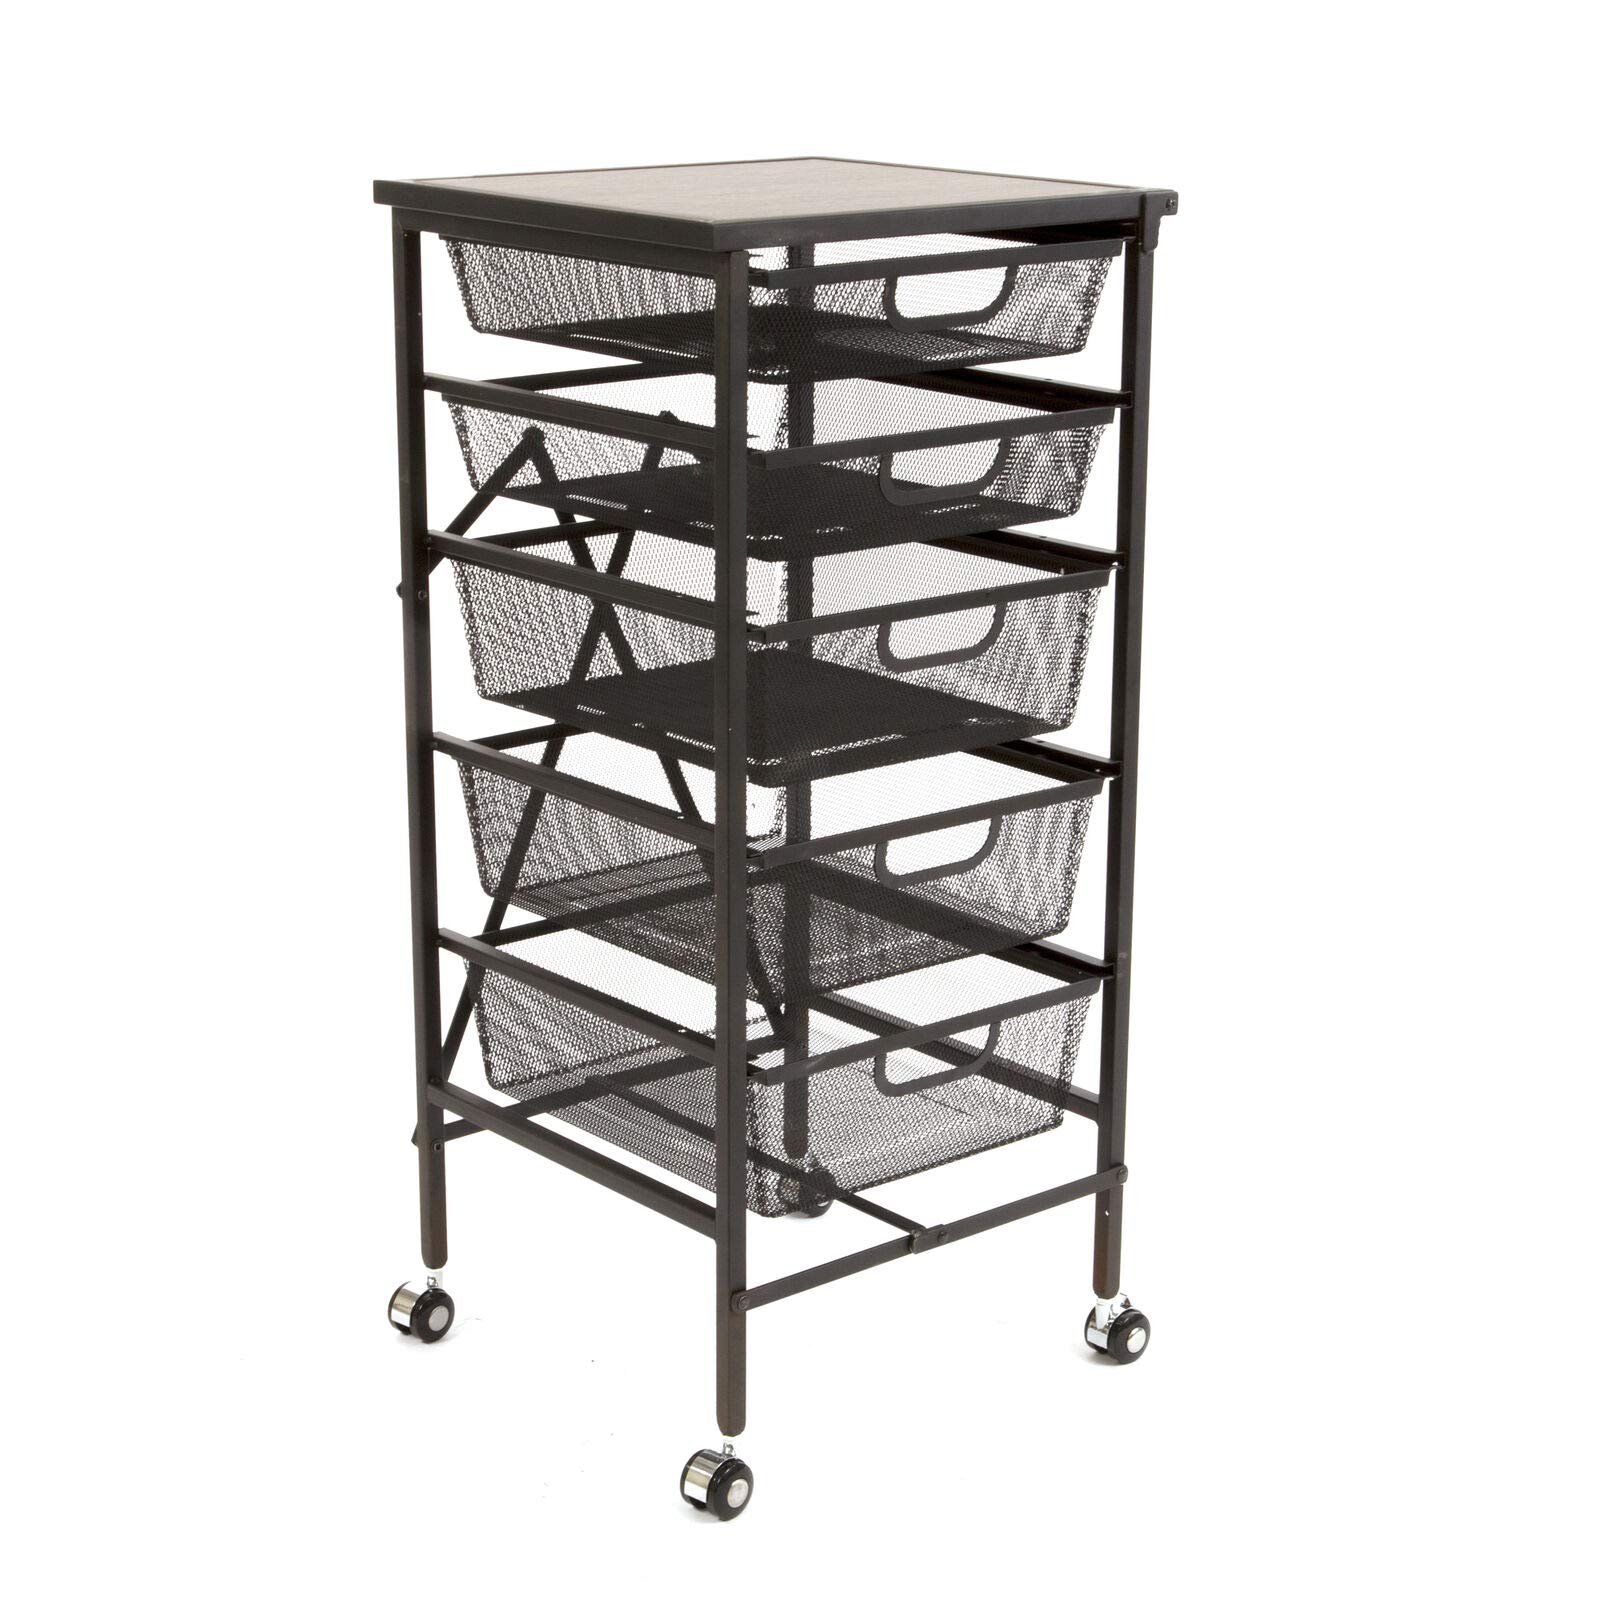 NanaPluz 34'' Black Rolling Wheeled 5-Tier Steel Foldable Drawer Caddy Cart Storage Rack Cabinet Organizer w/Wooden Top with Ebook